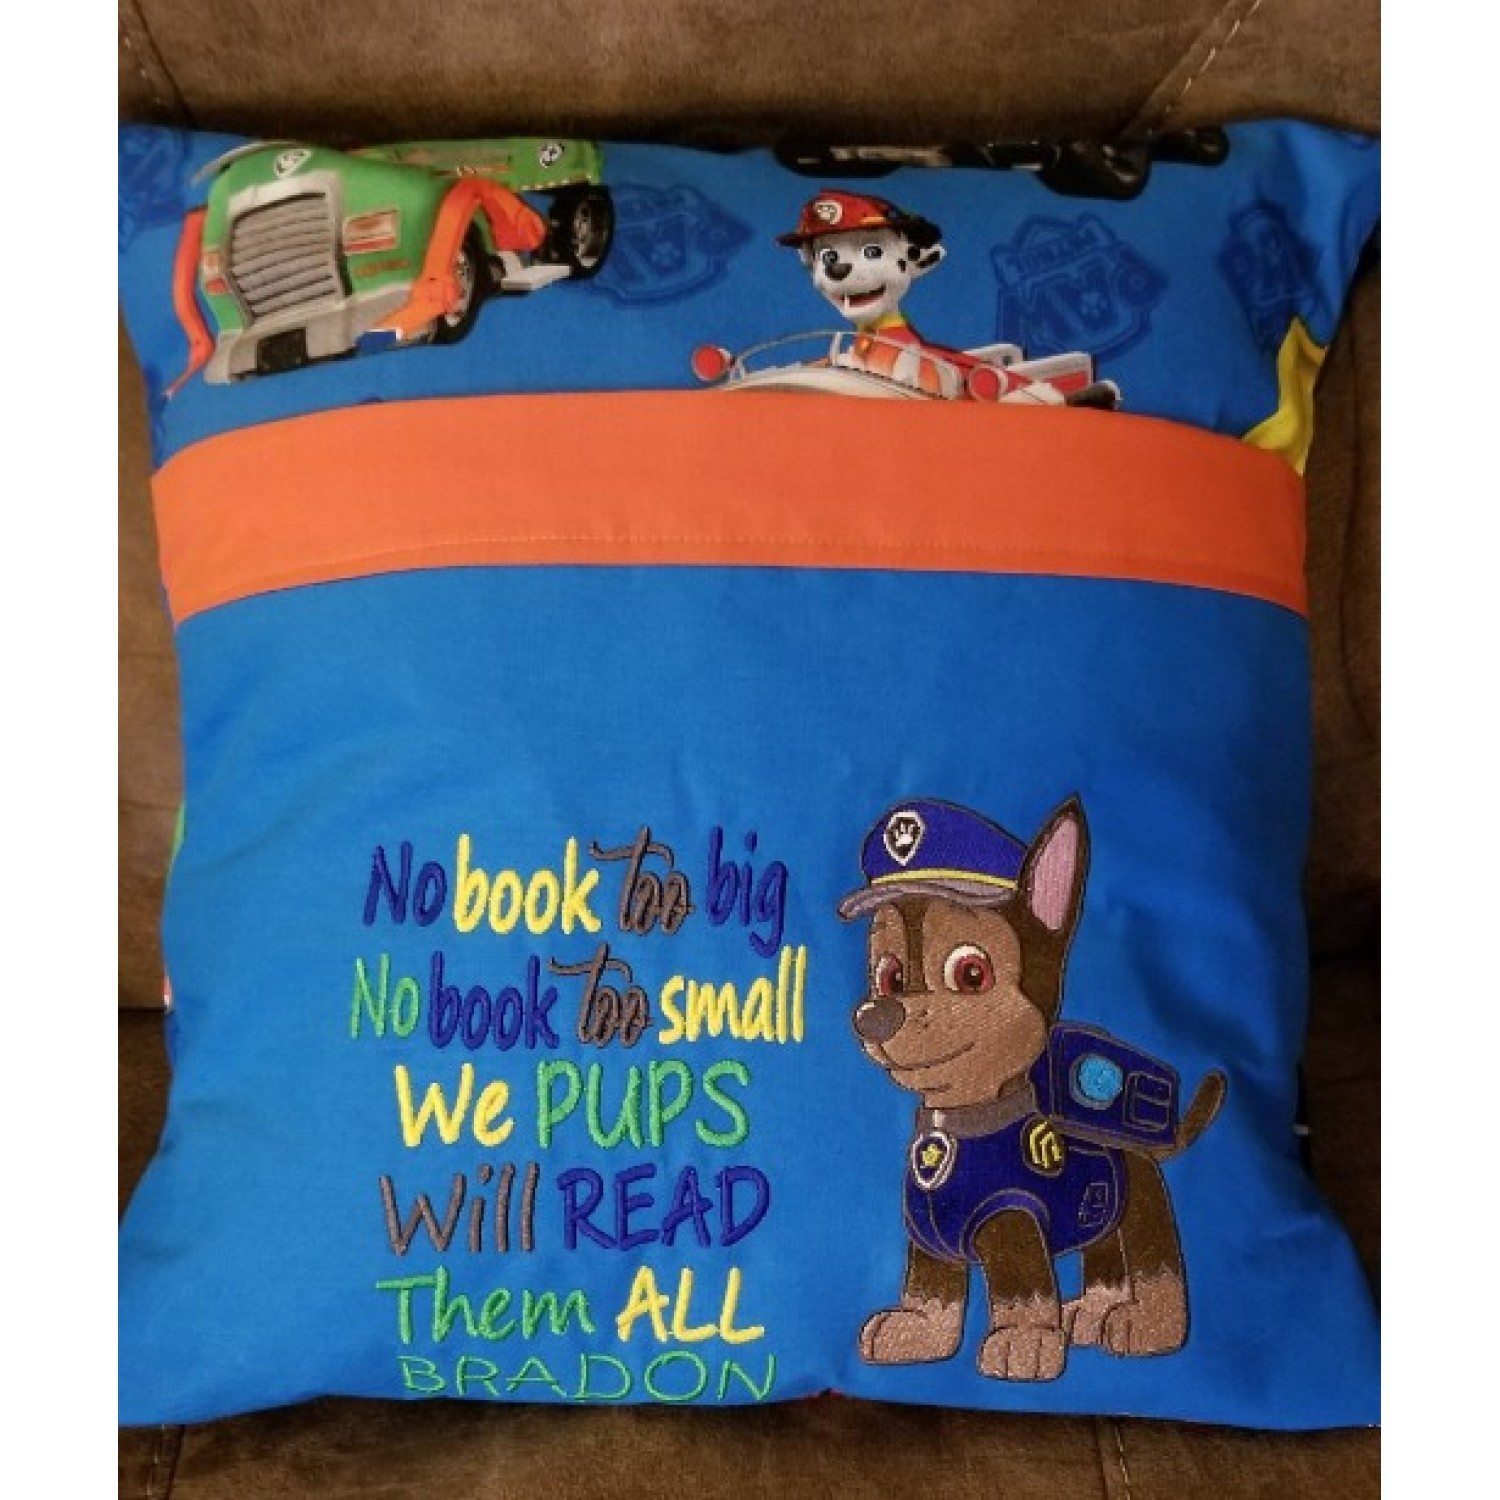 Paw Patrol Chase embroidery with no book too big 2 designs 3 sizes